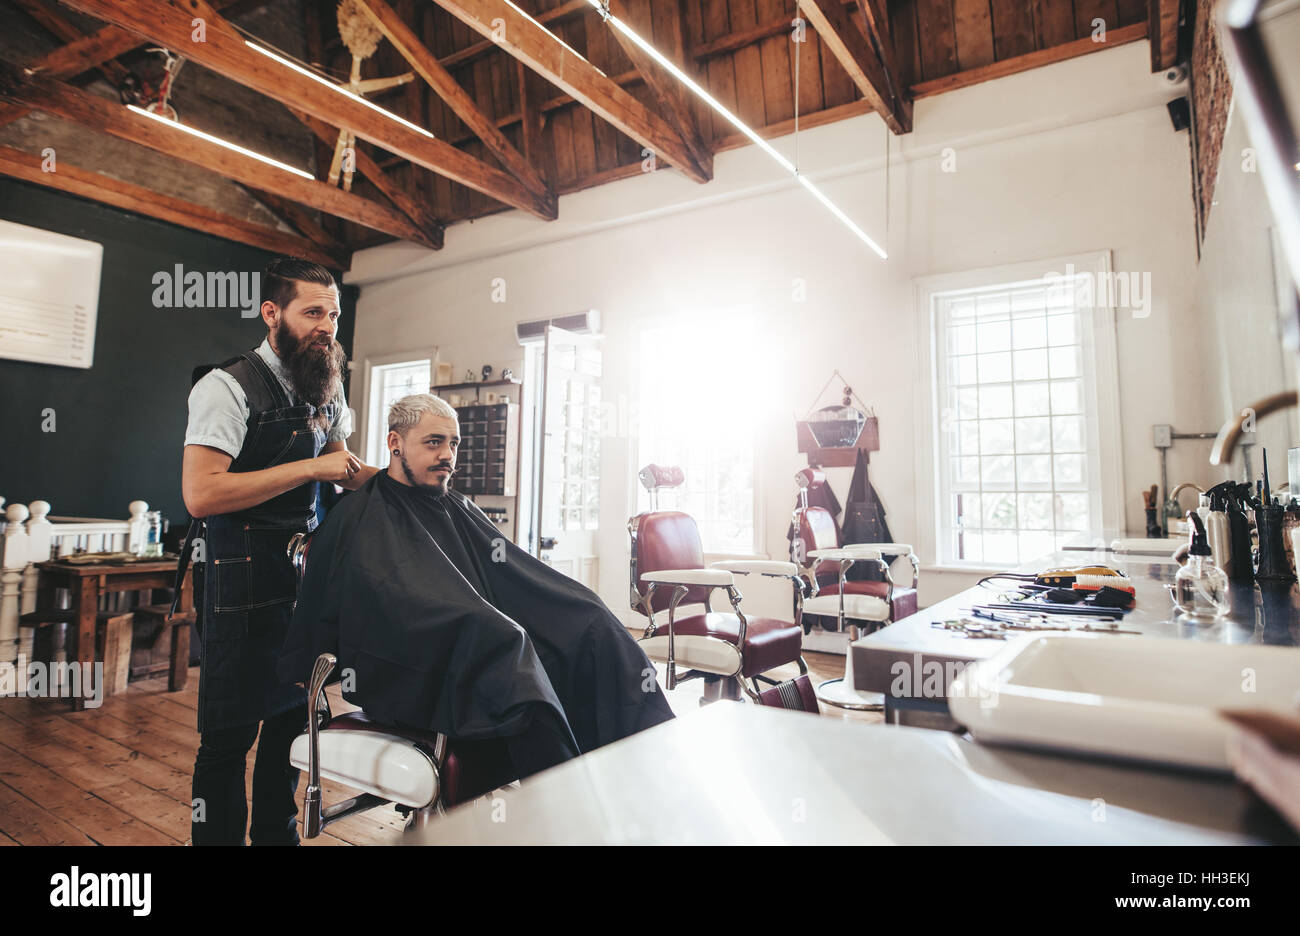 Young man getting haircut at barber shop. Hairdresser with customer at salon. - Stock Image